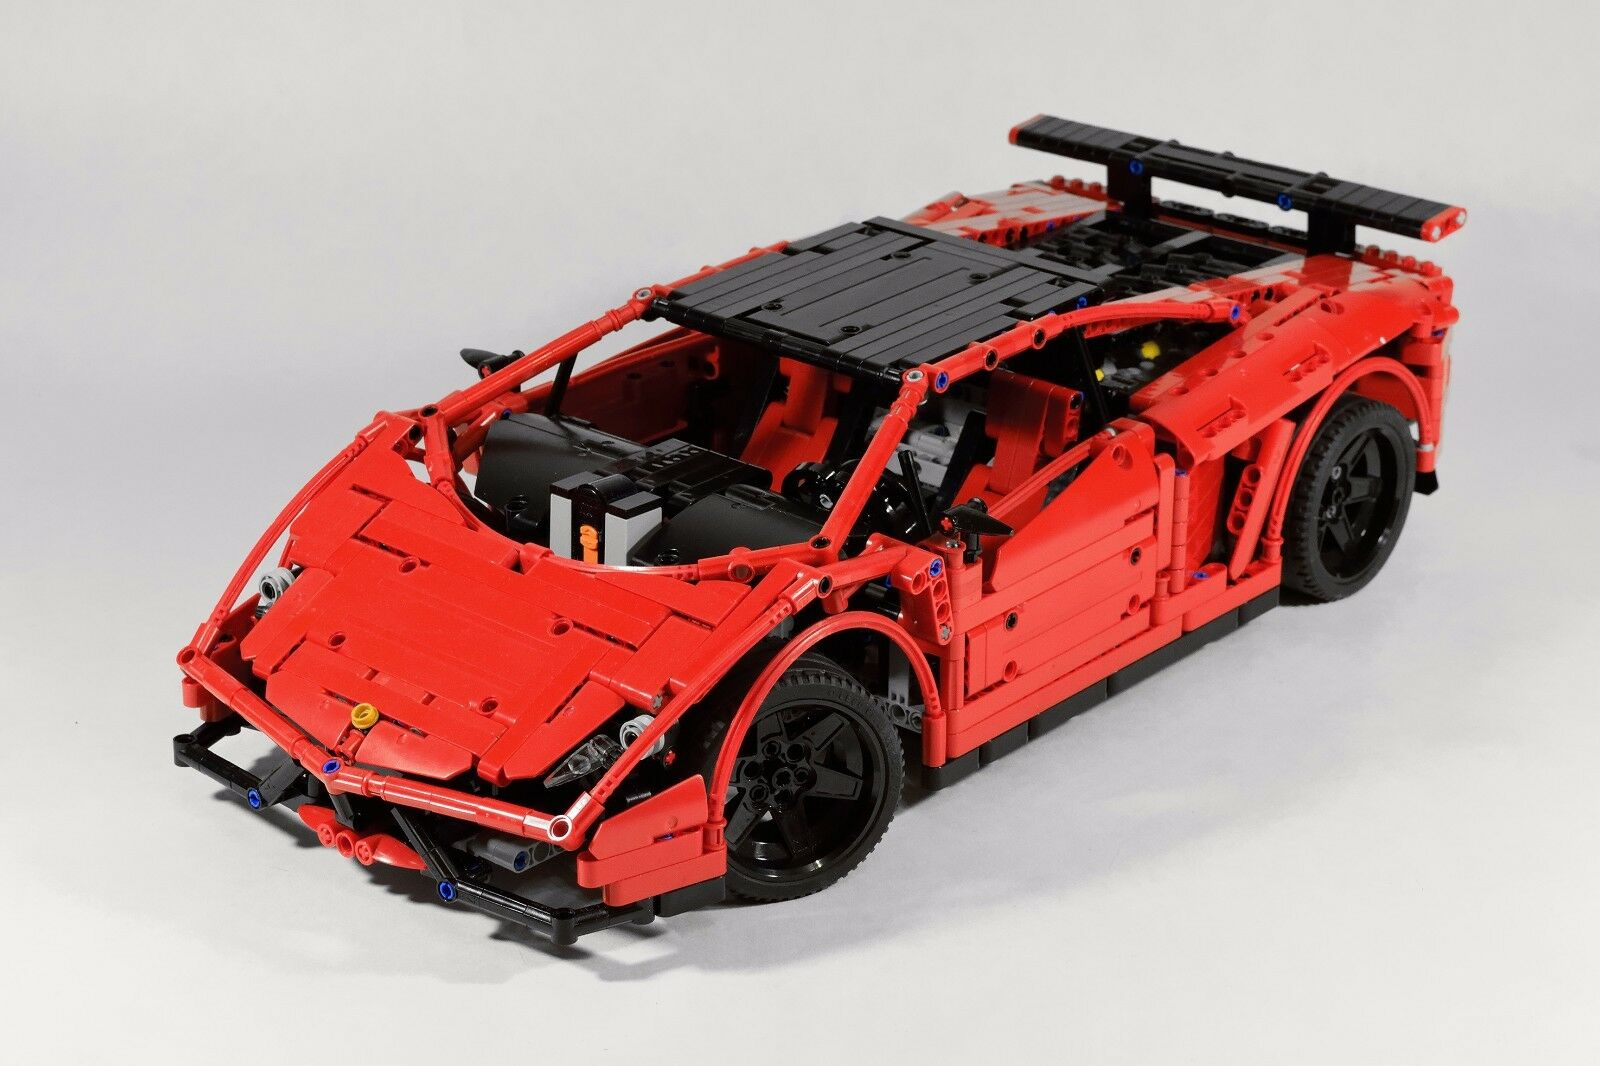 Lego technic MOC - Lamborghini Gallardo Super RC